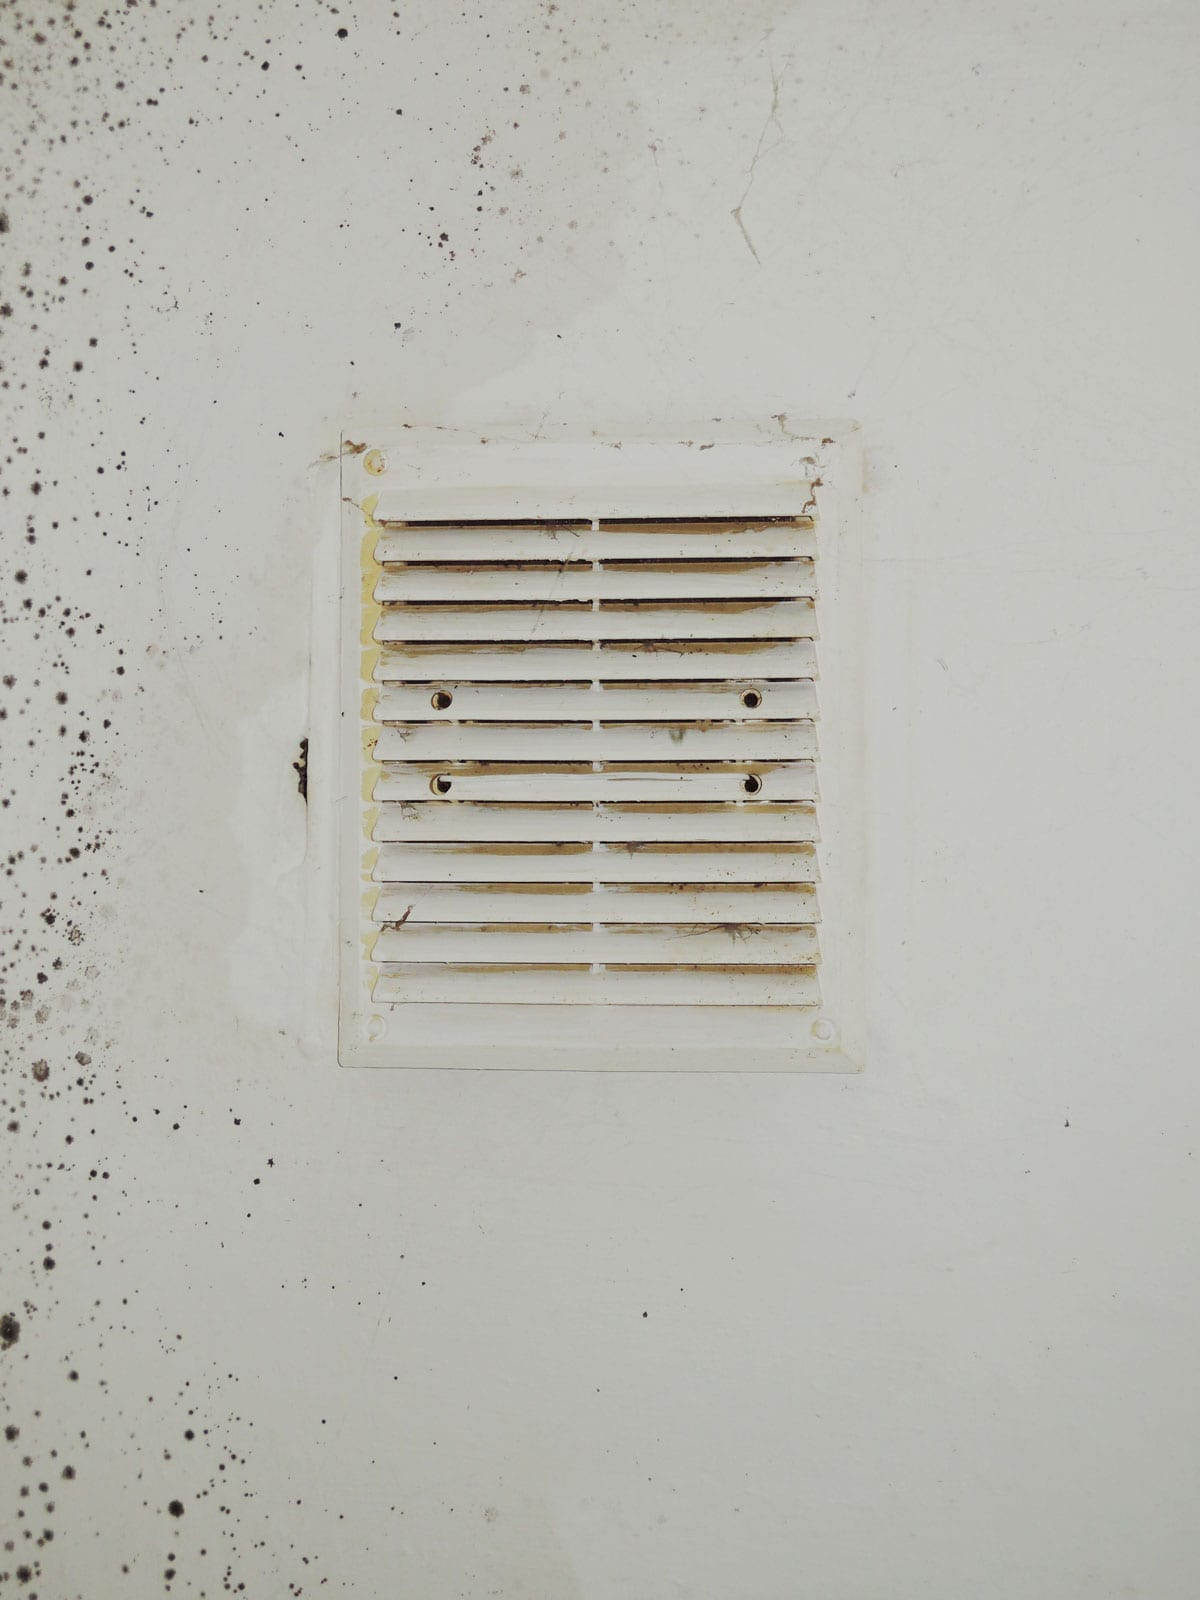 mold in your air ducts